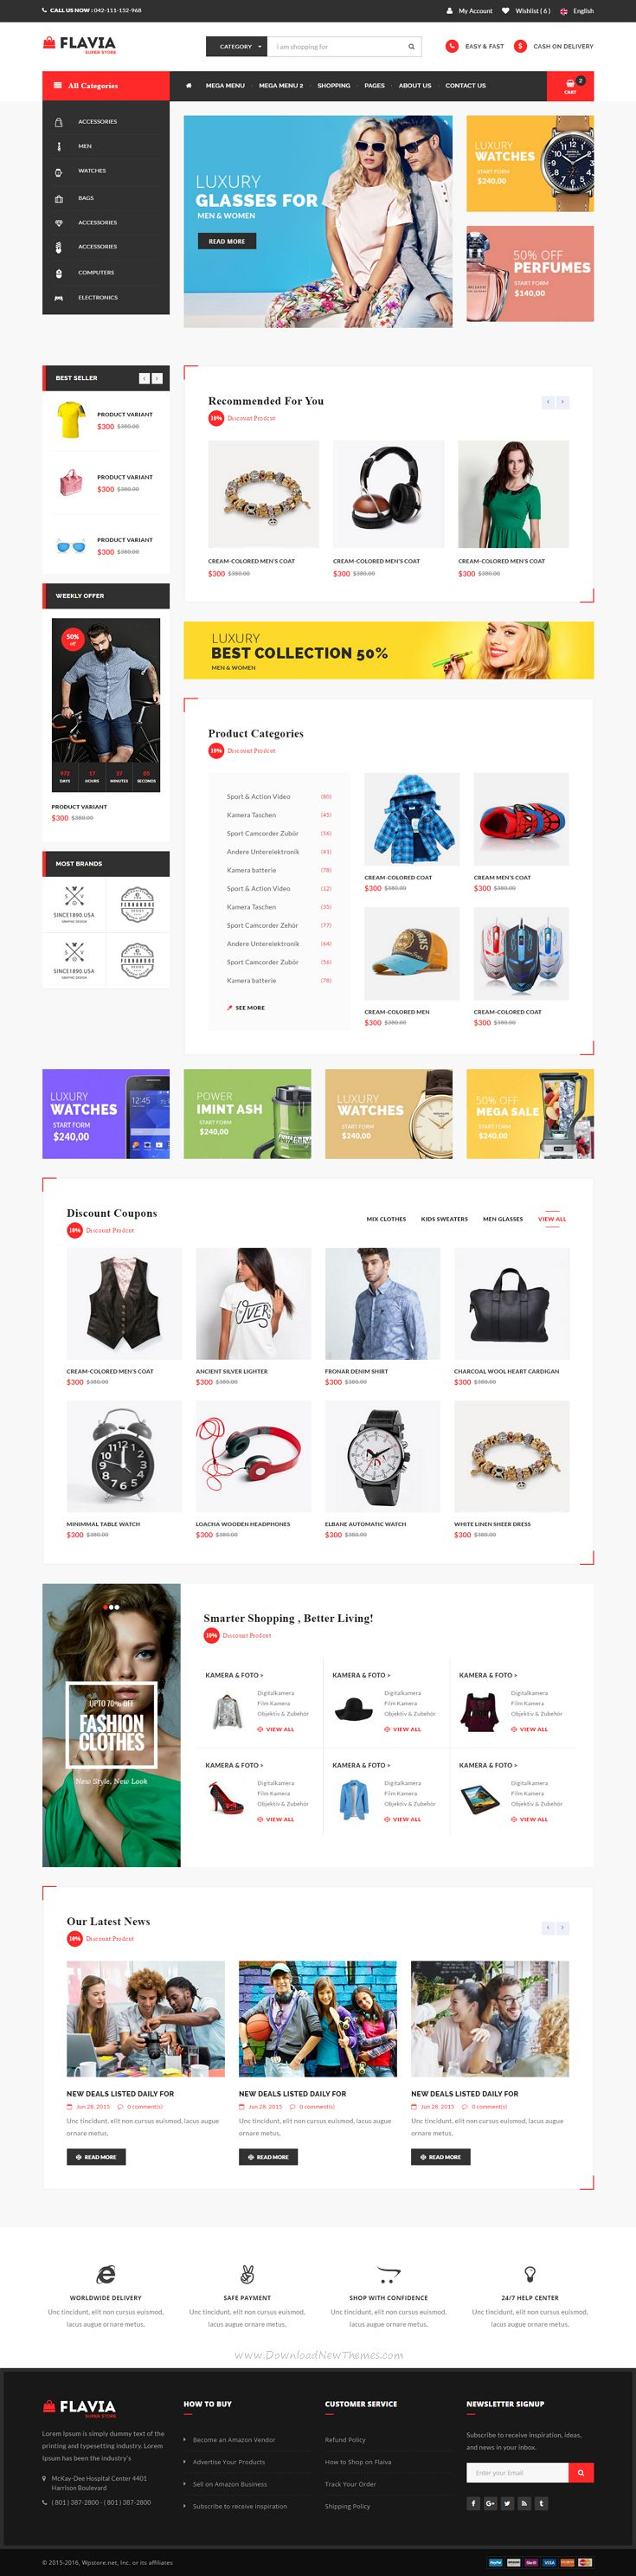 Flavia - HTML5, Bootstrap and CSS3 eCommerce Website Template comes with 7…